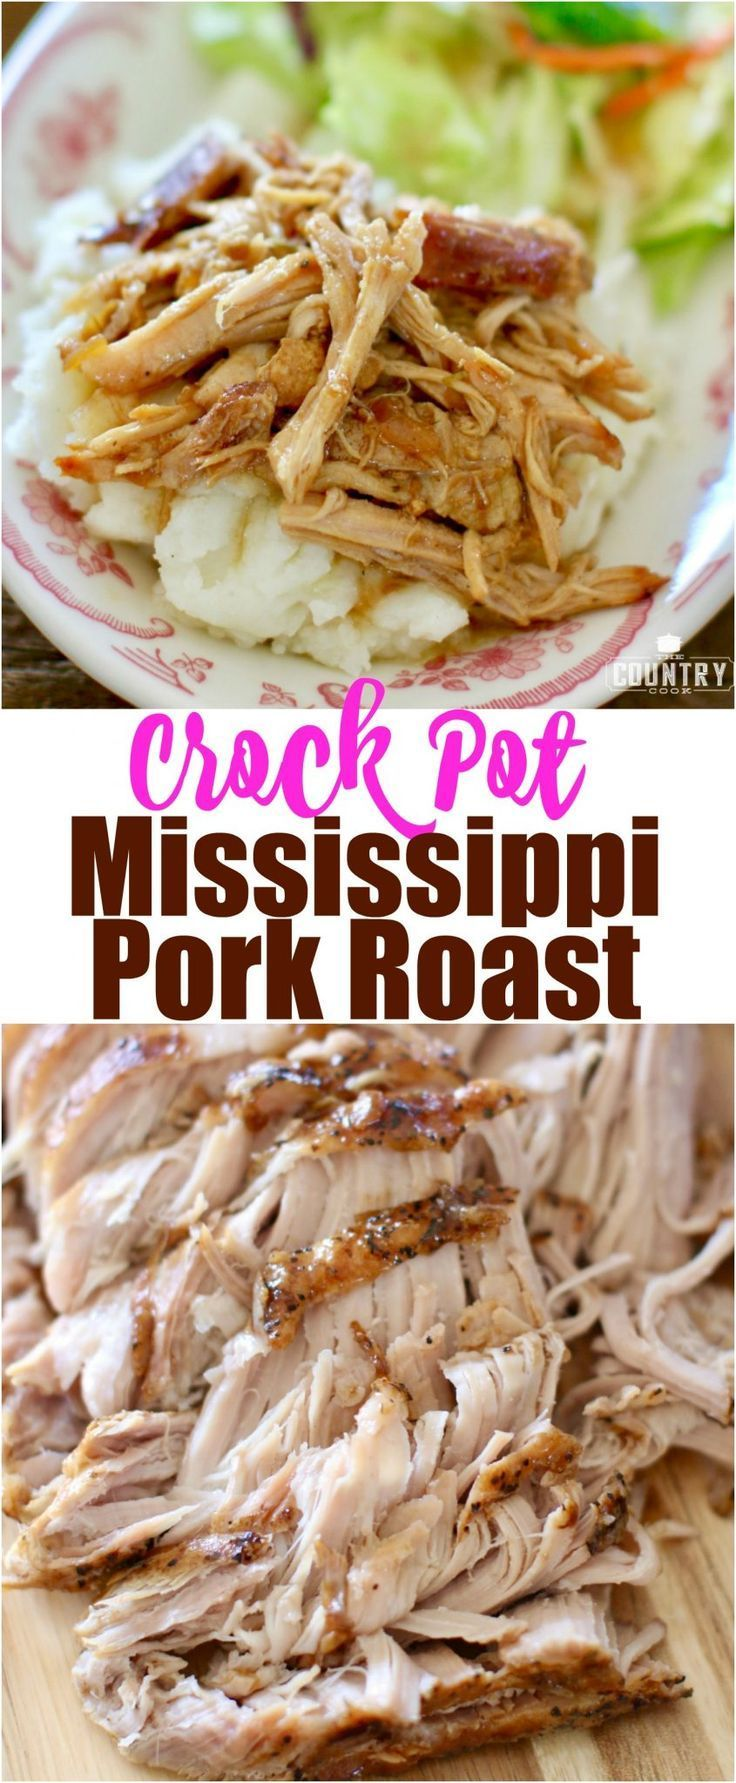 Crock Pot Mississippi Pork Roast recipe from The Country Cook